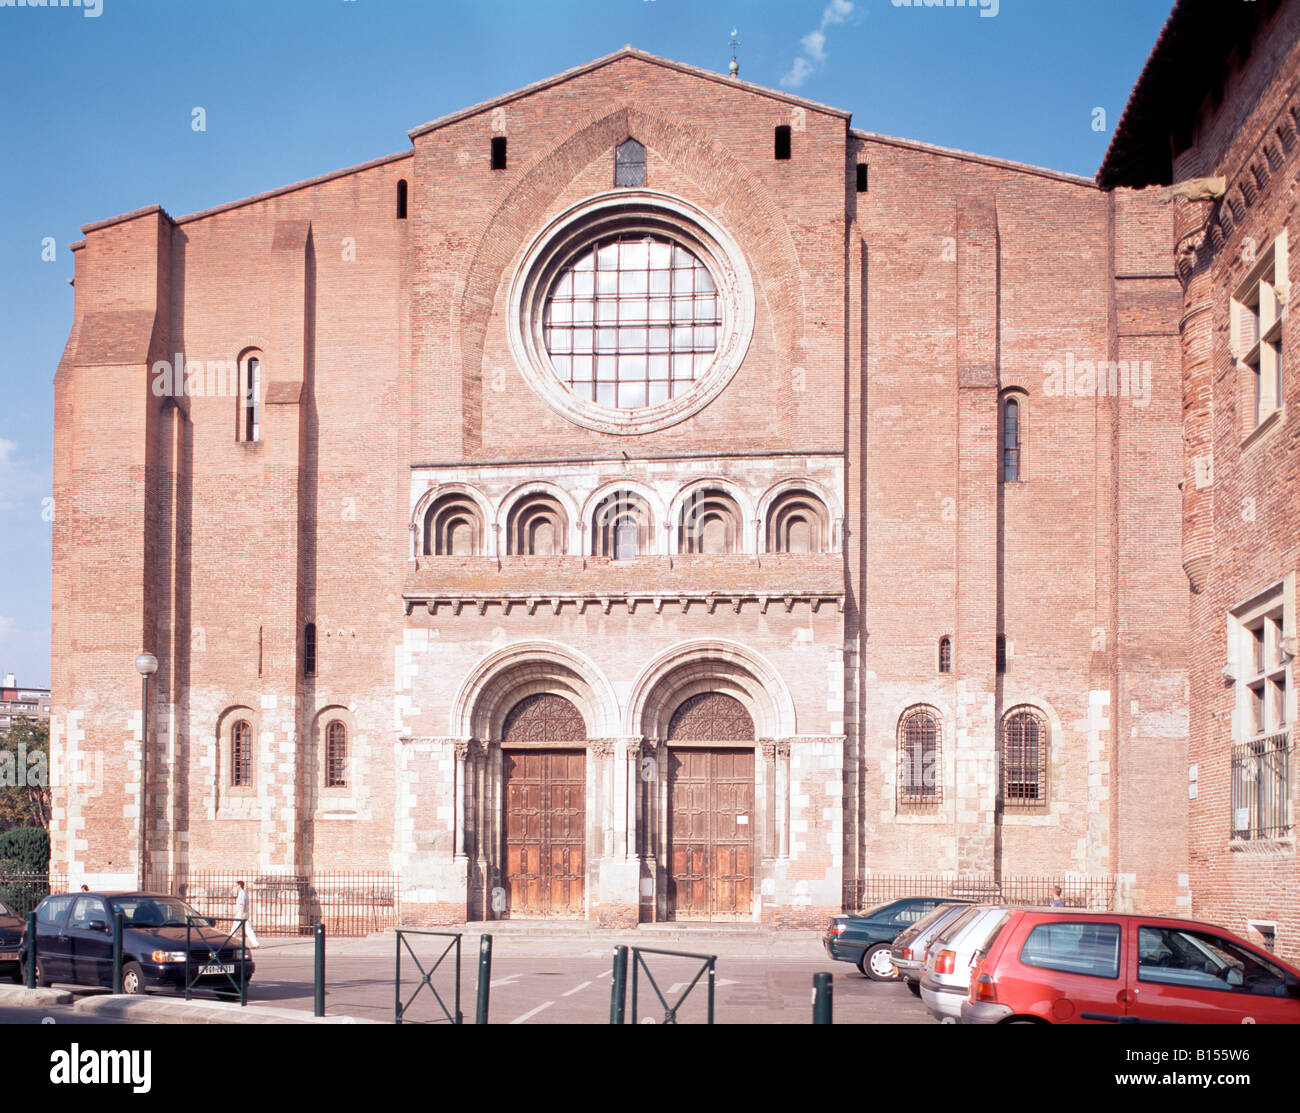 toulouse basilika basilique saint sernin ext facade ouest stock photo royalty free image. Black Bedroom Furniture Sets. Home Design Ideas